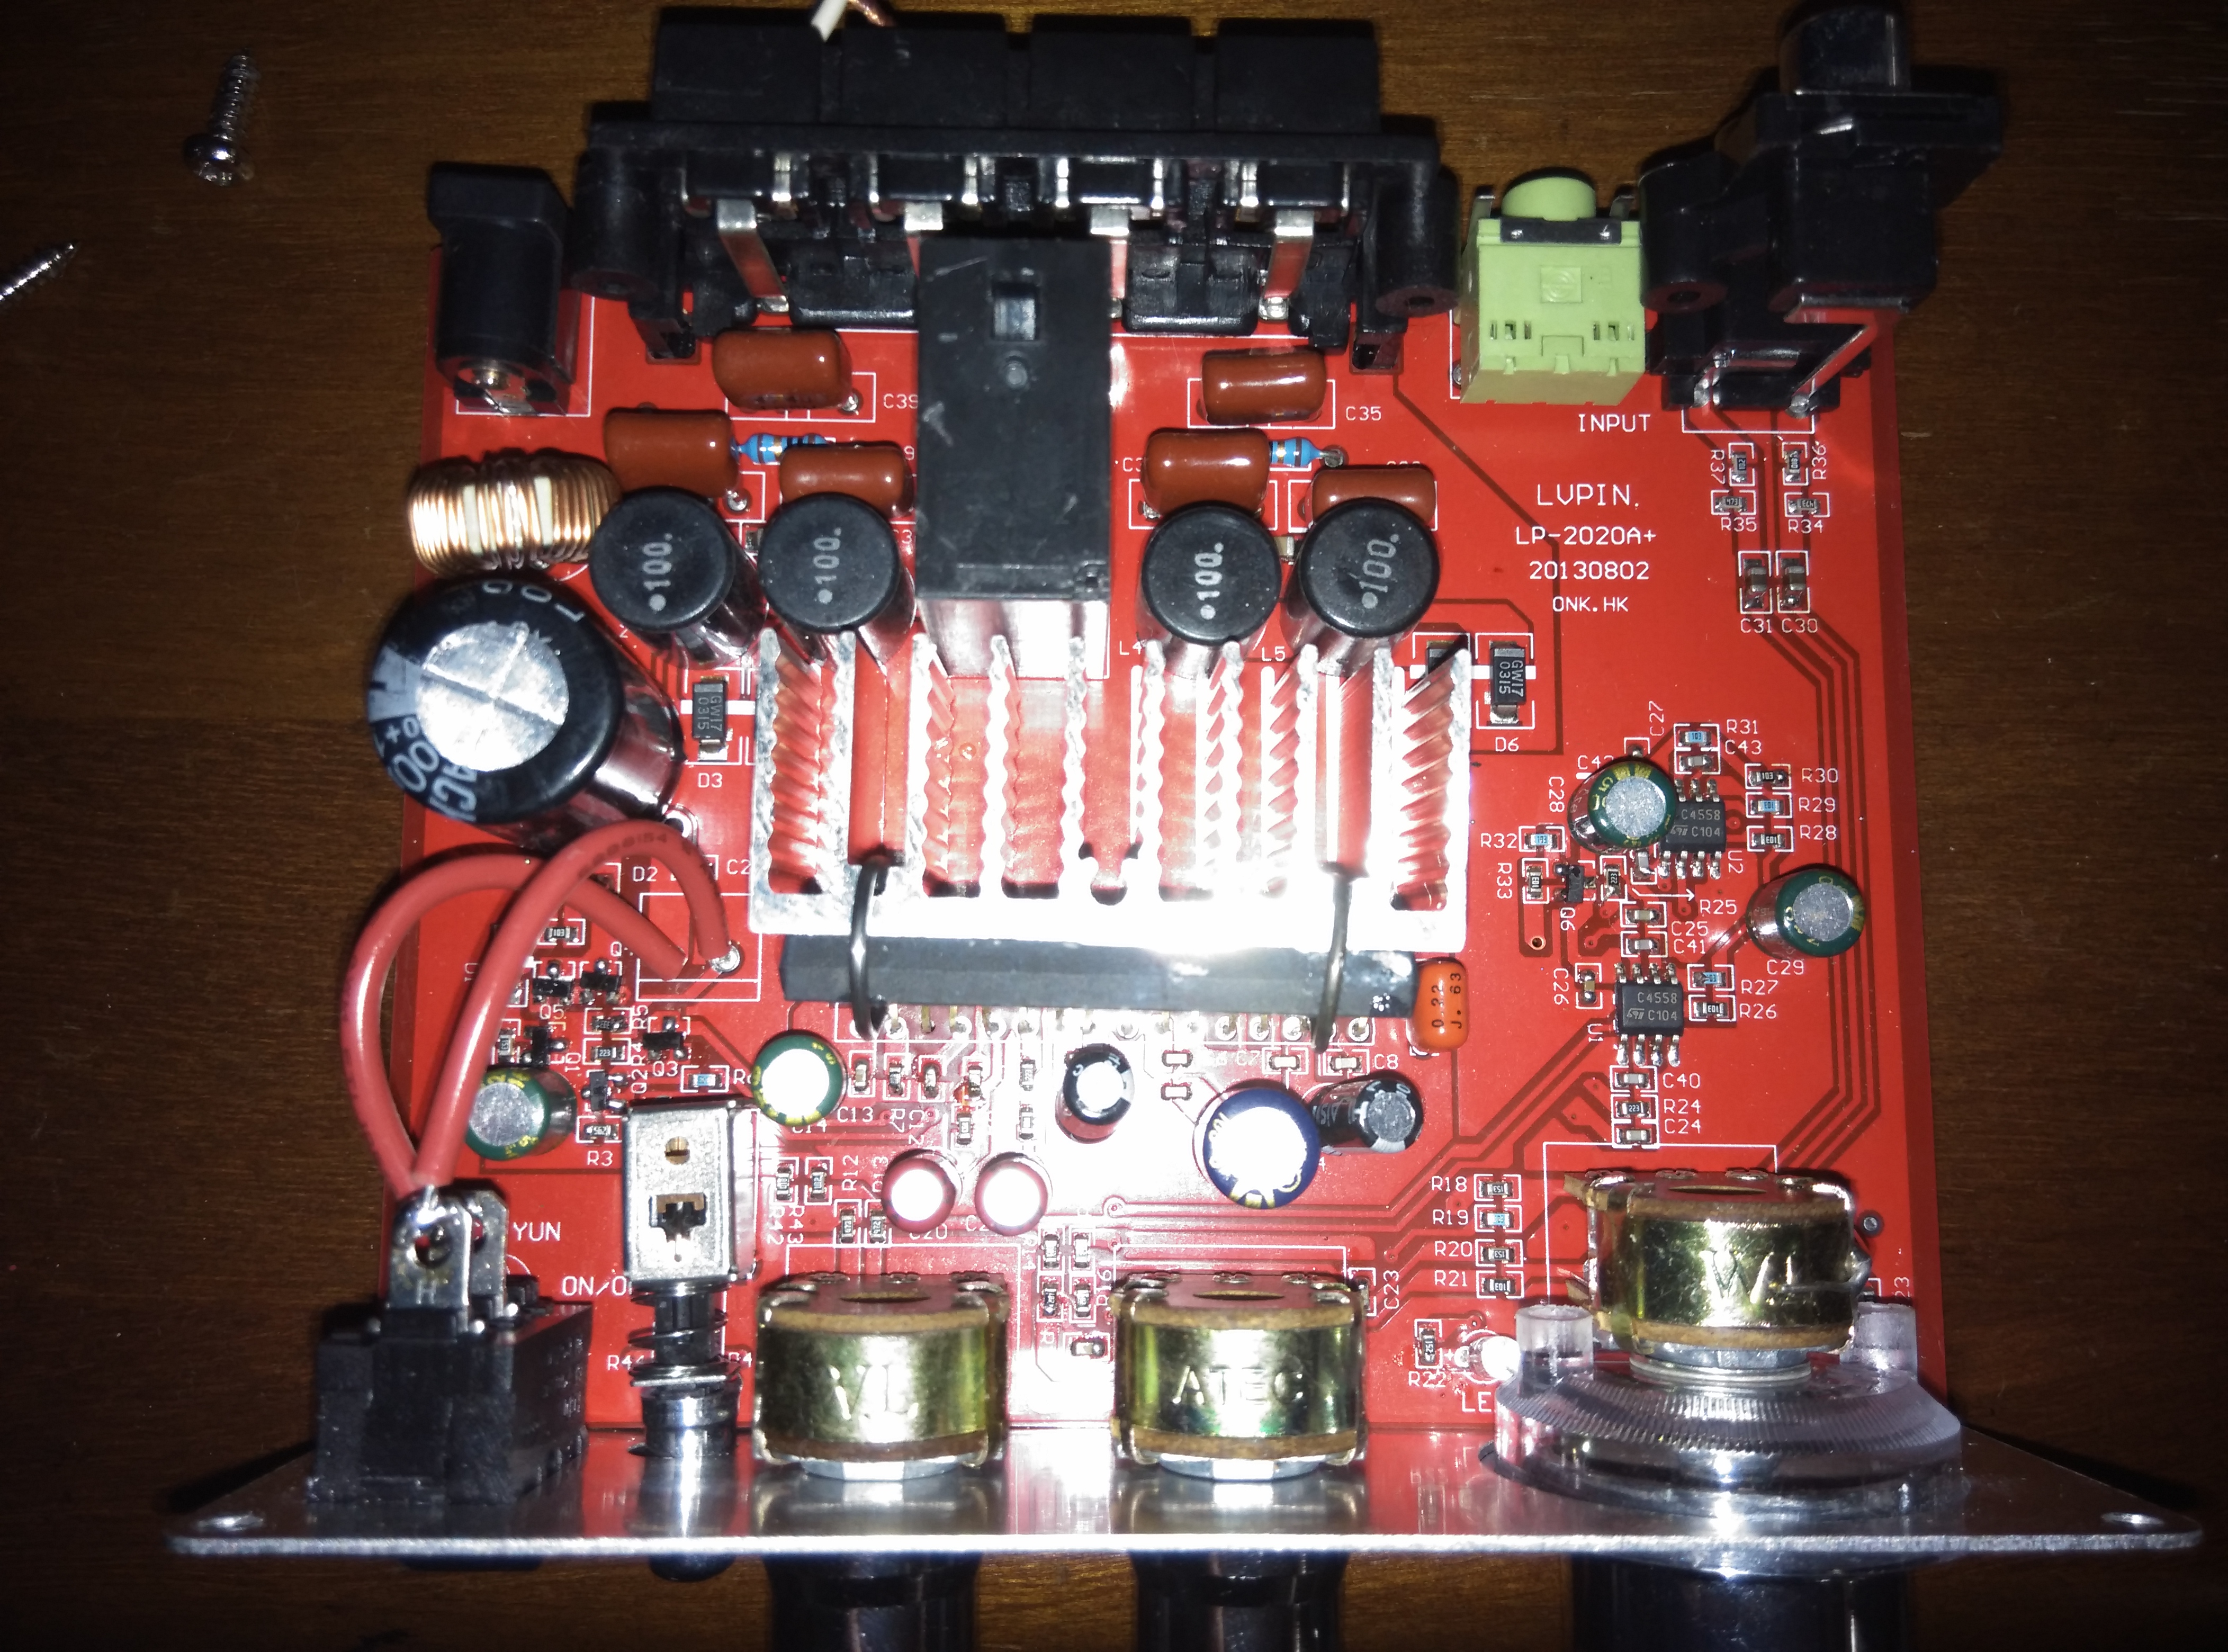 Lvpin Lepai Amplifier Modding An Overclocking Pcb For Board Audio Power Circuit Quotes Id Like To Change Out All Of The Electrolytic Capacitors On As Well 6 Rectangular In Charge Output Stage